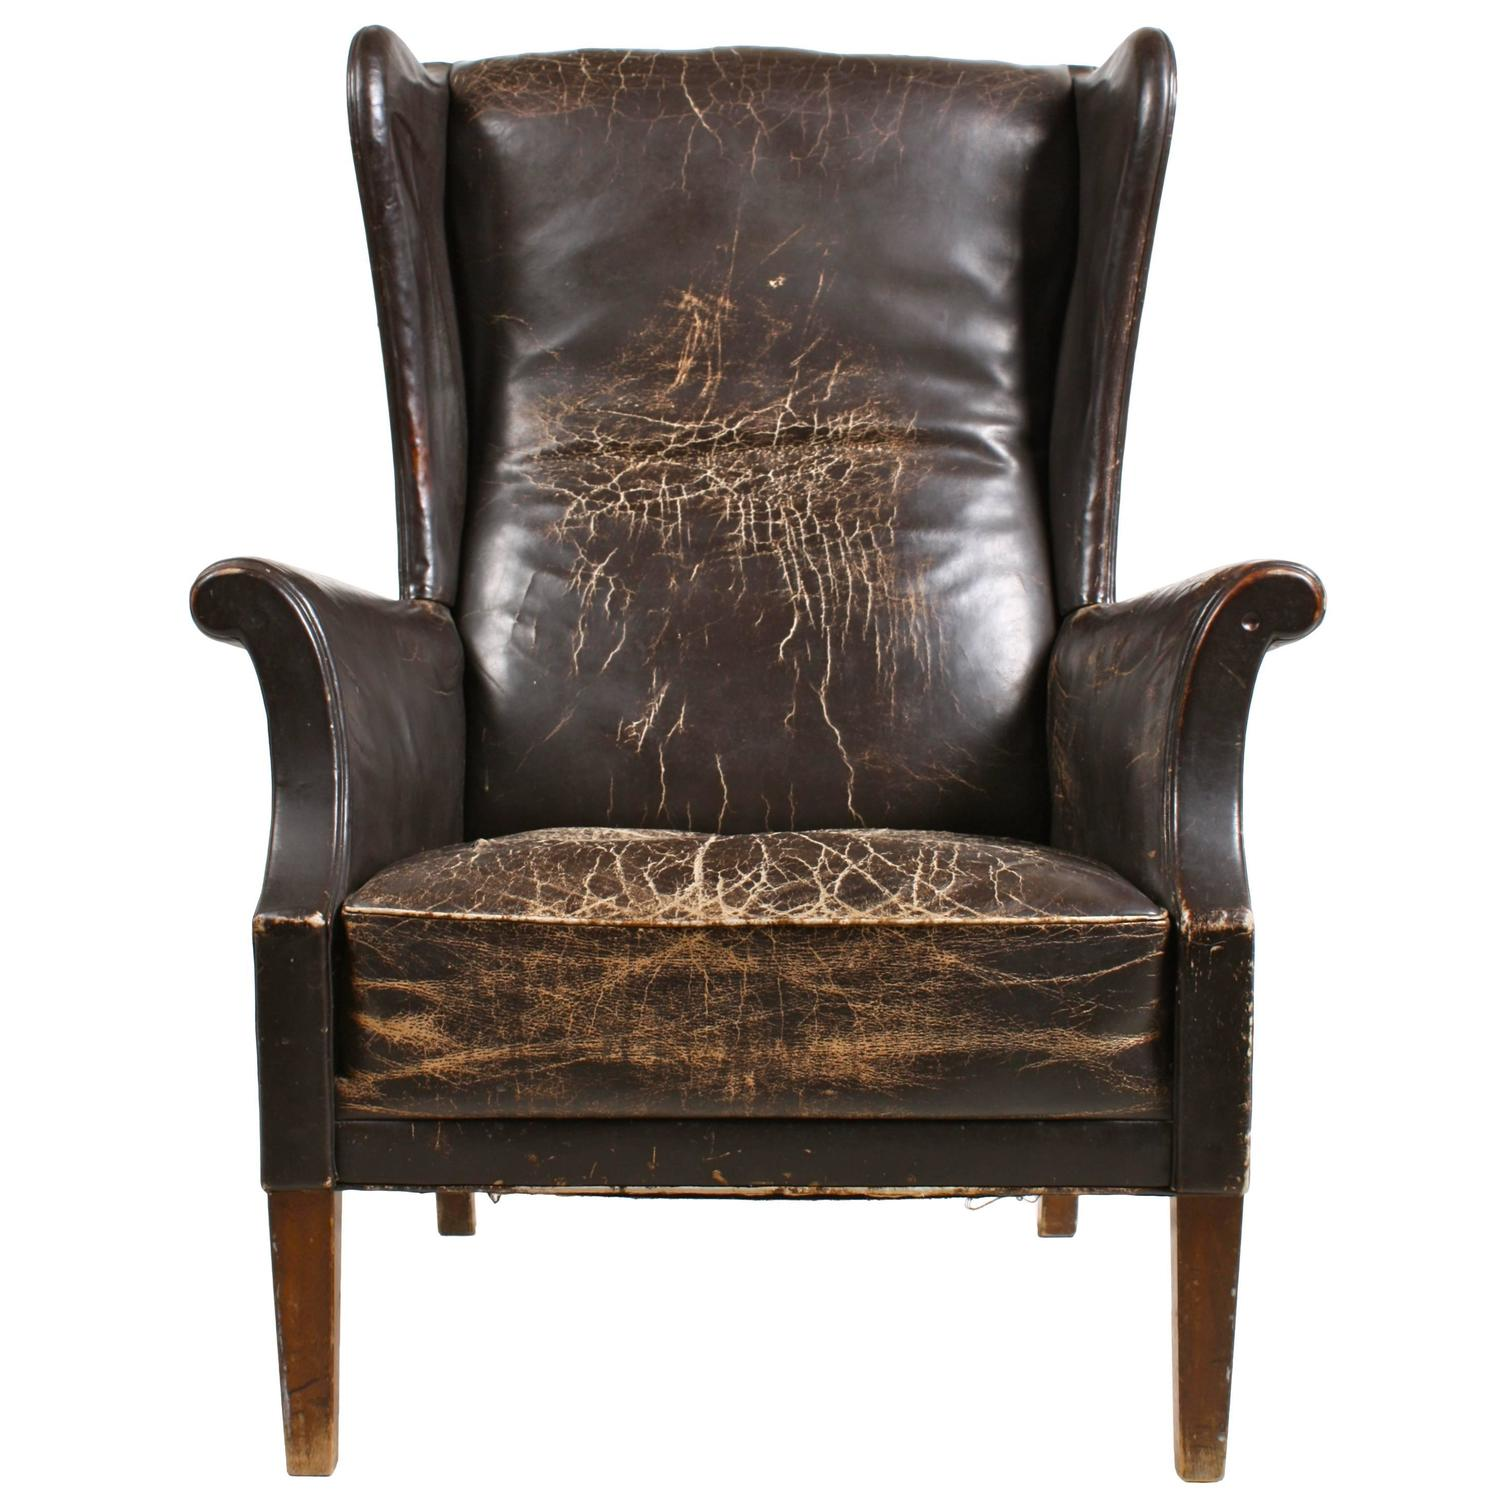 Decorative Wingback Chair For Sale at 1stdibs